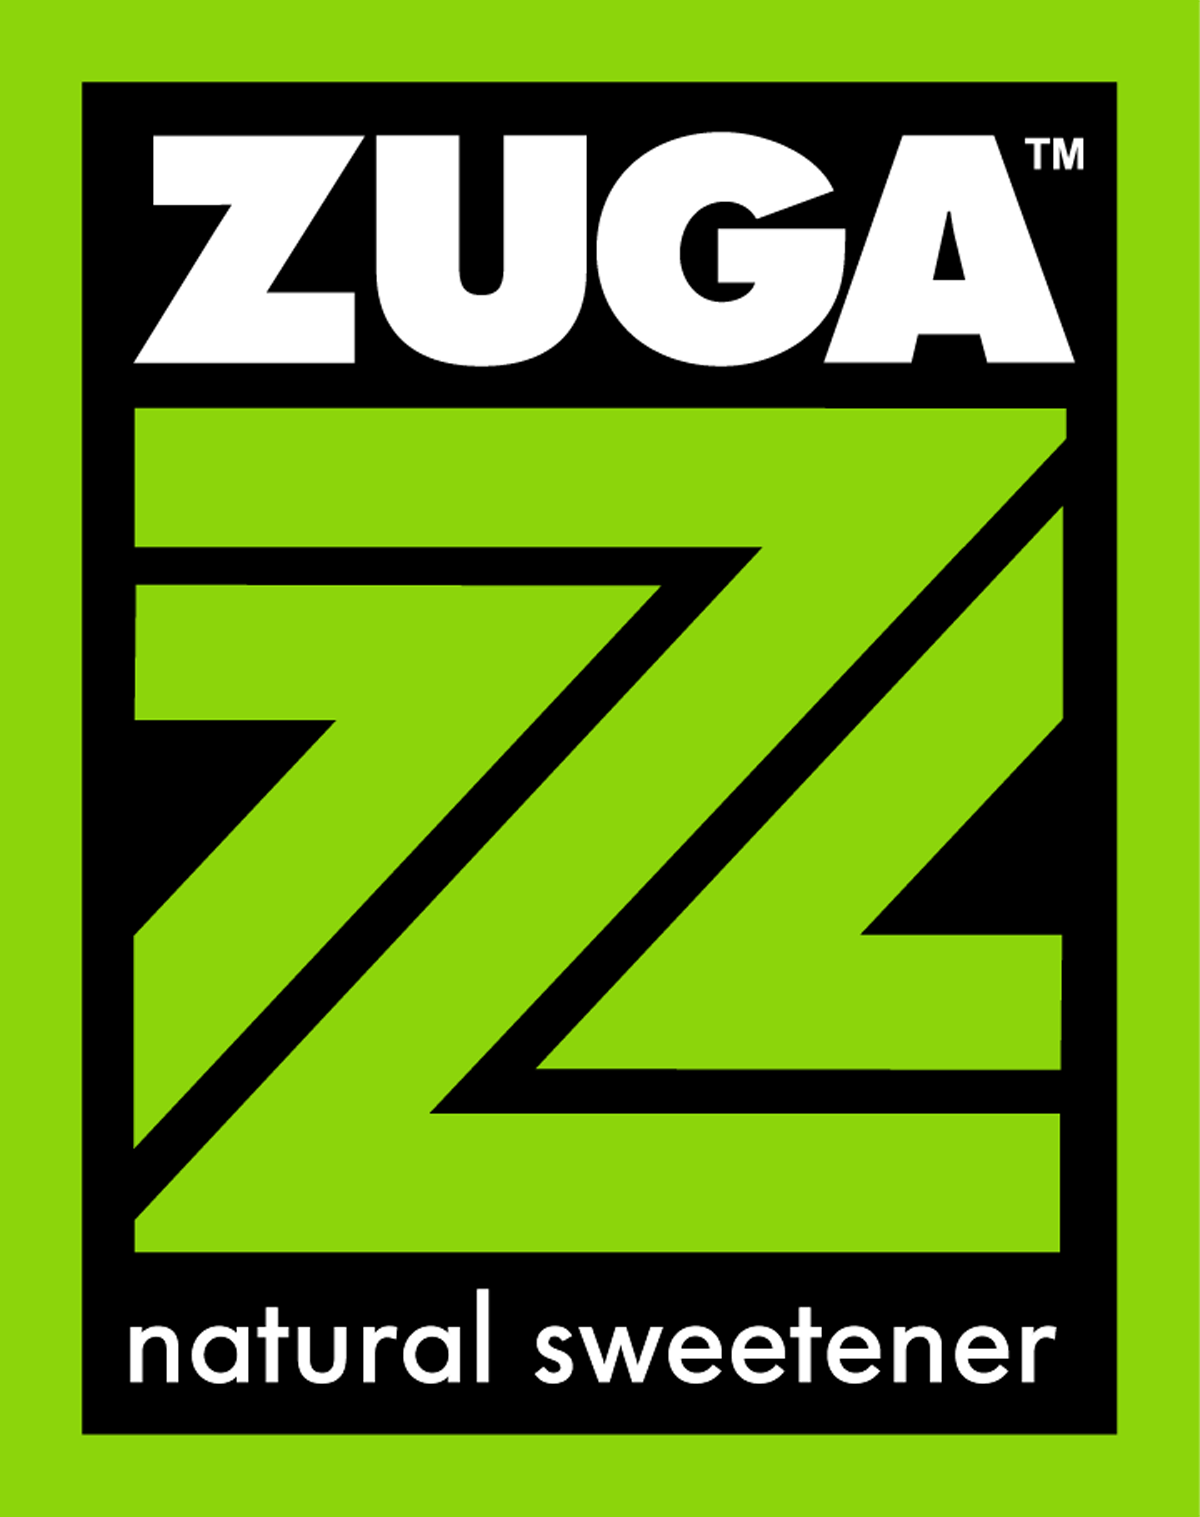 Official ZUGA Logo